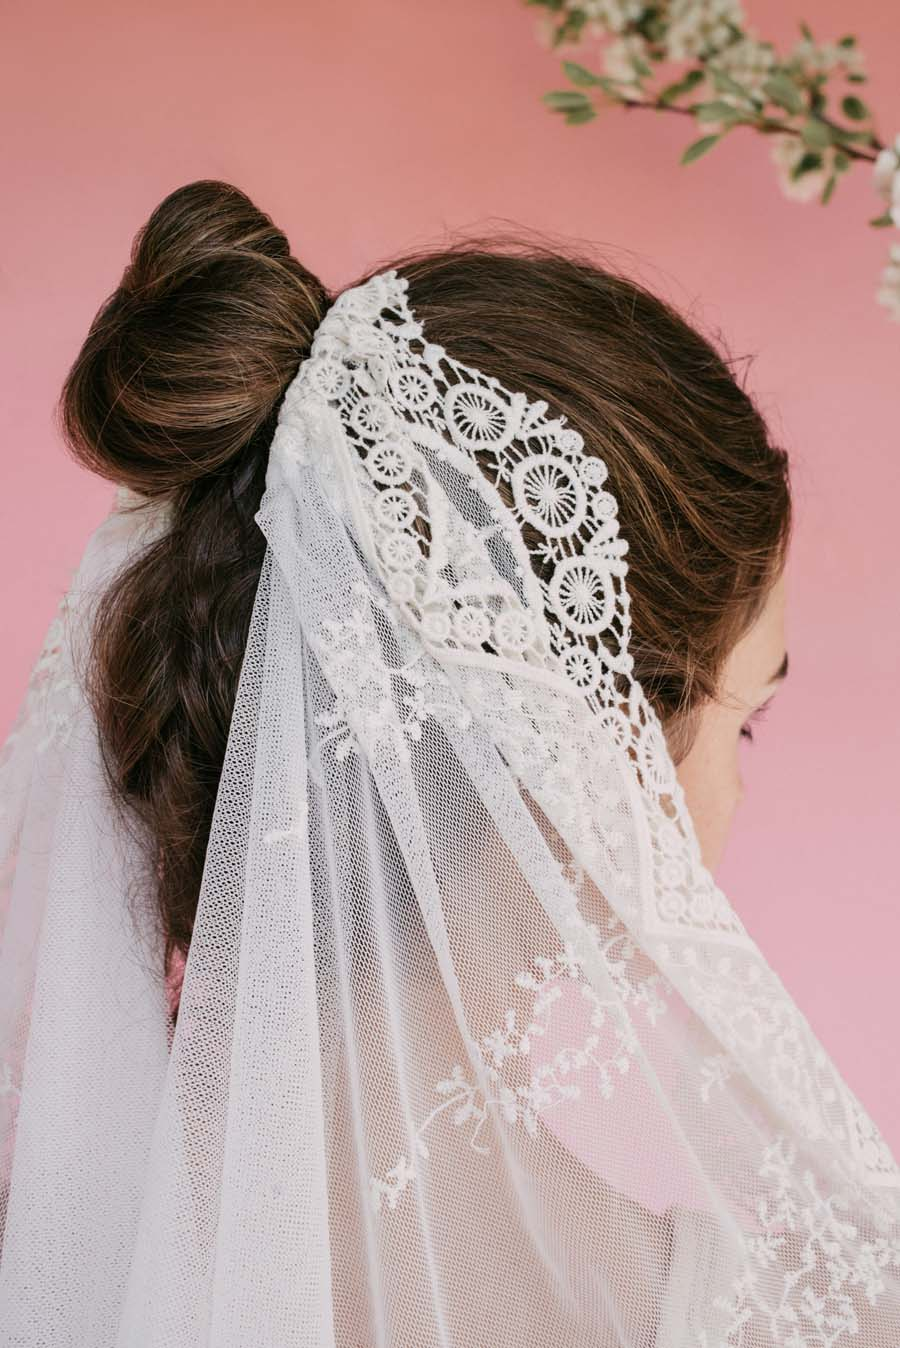 Pretty, Fun & Totally Unique Wedding Veils by Biba's Closet #veilmeagainPretty, Fun & Totally Unique Wedding Veils by Biba's Closet #veilmeagain